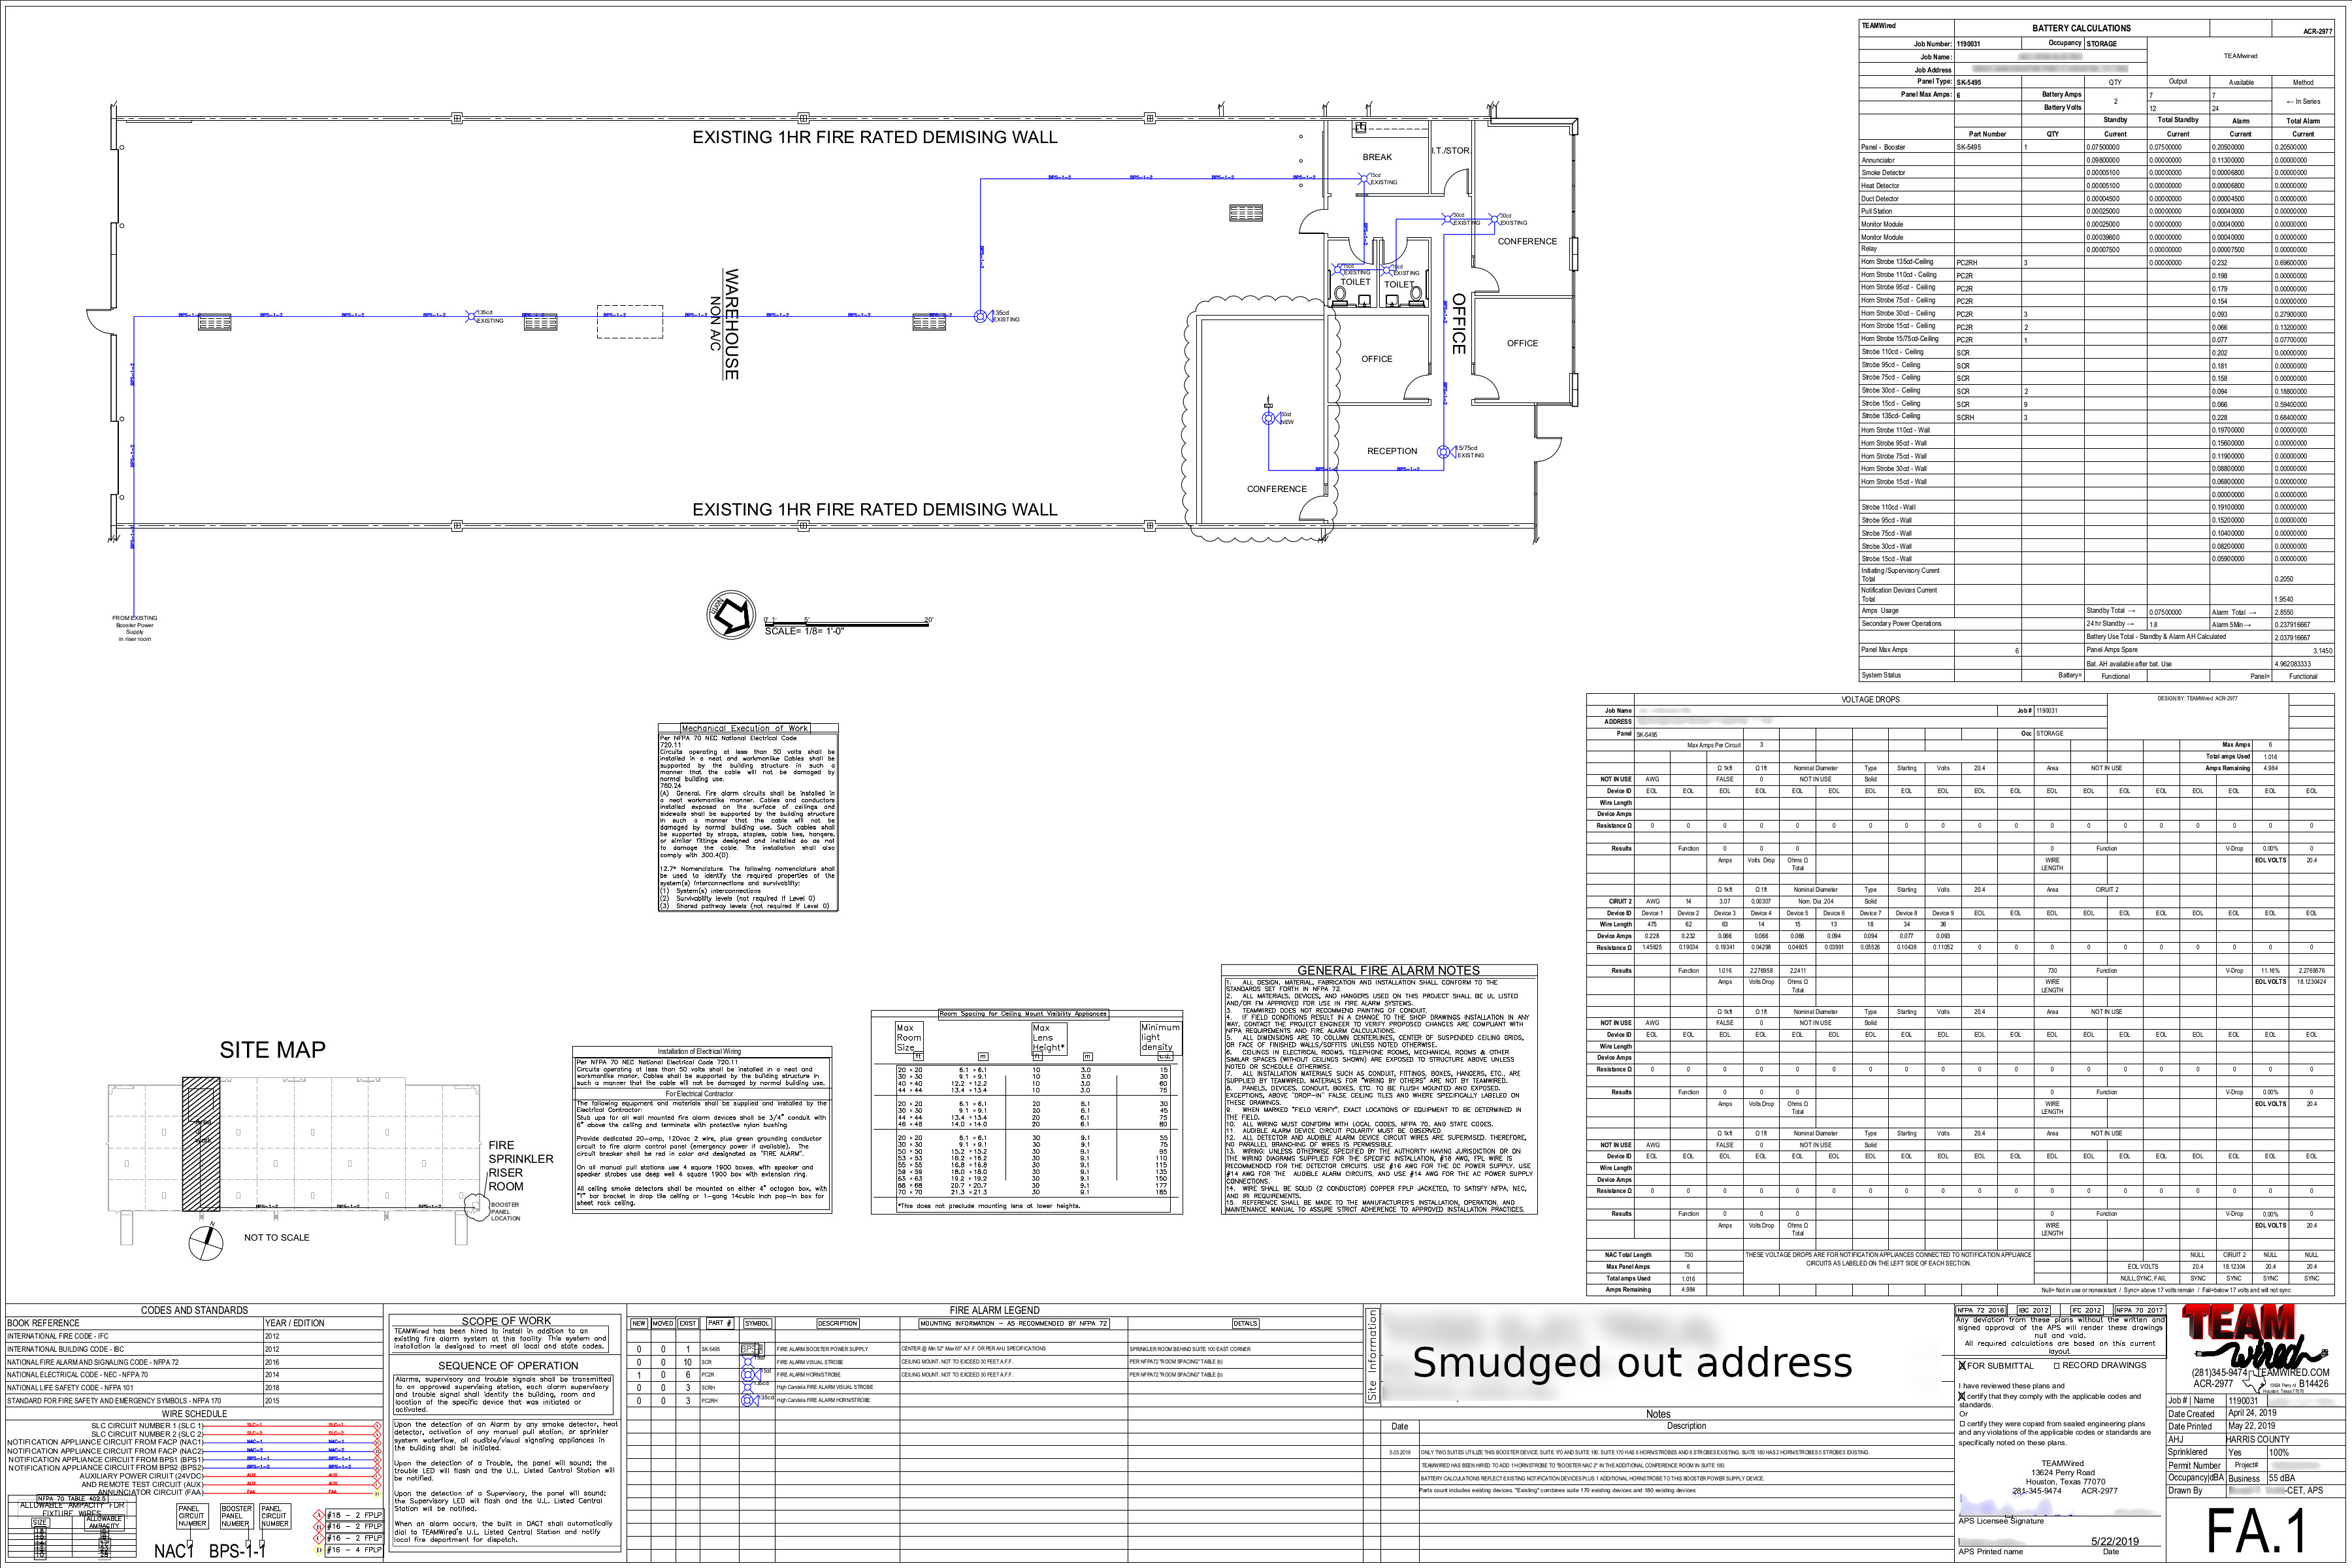 Wiring A Smoke Detector Diagram 31 Images Of Installation Sprinkler Tamper Switch 38